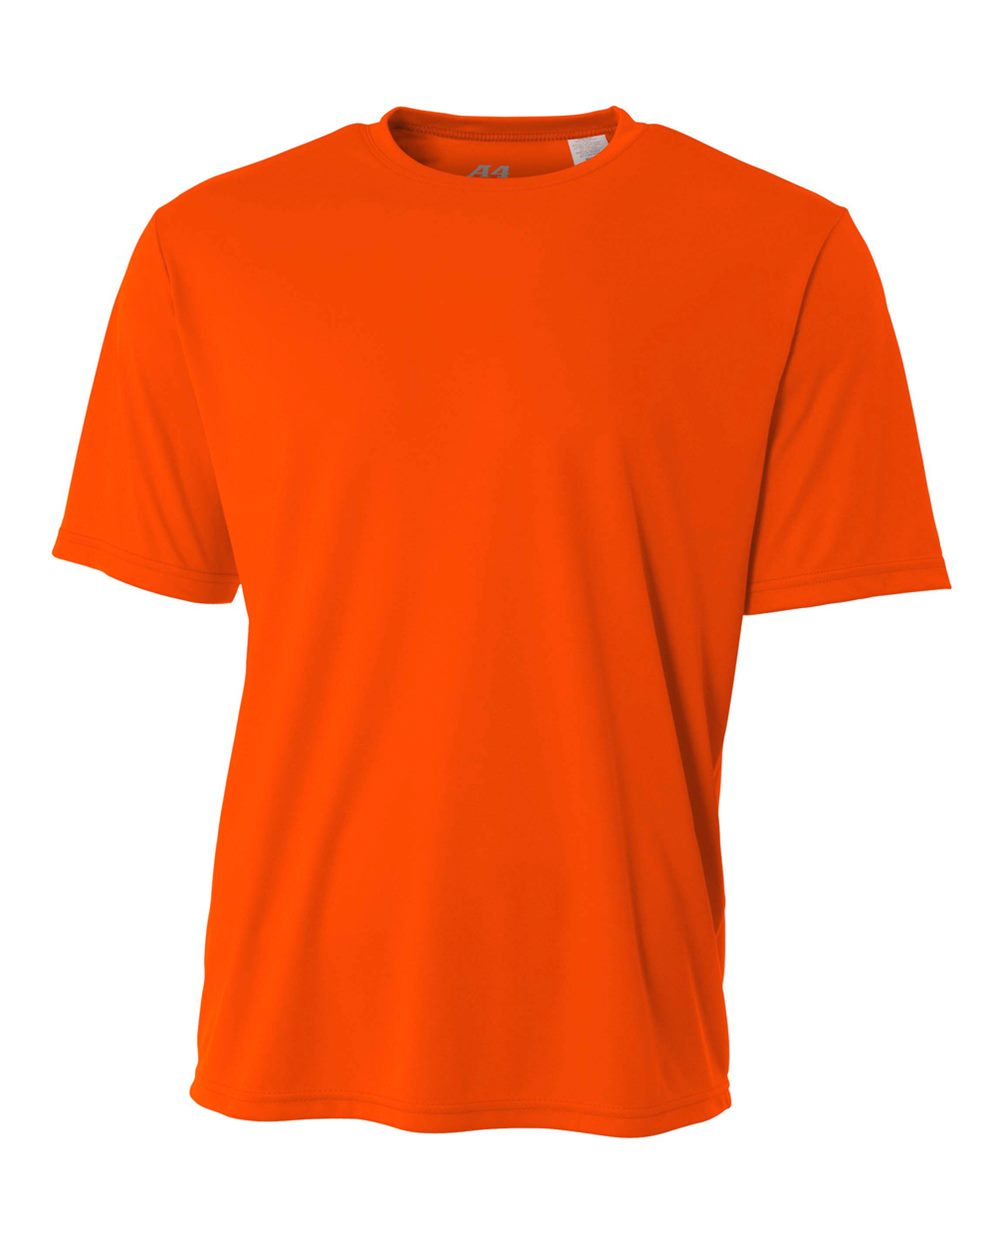 mw-polo-safety-orange.jpg